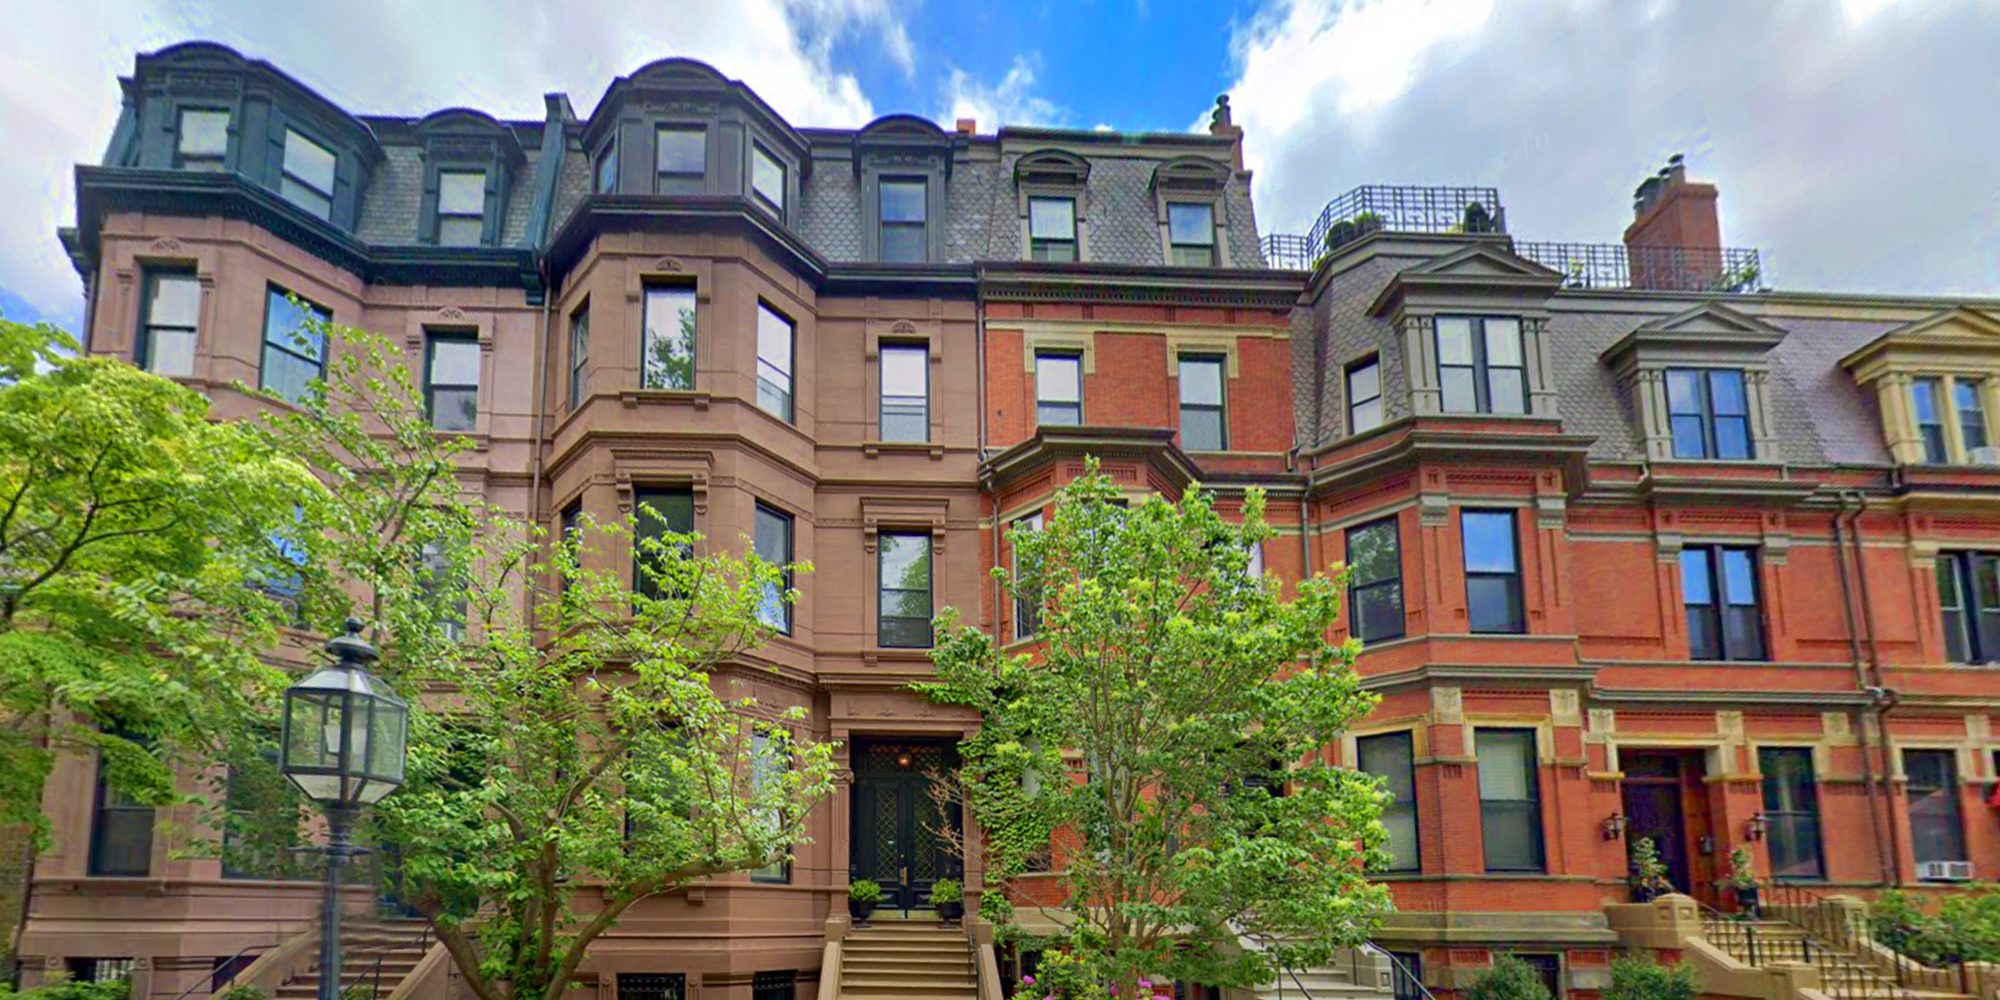 Coming Soon! Step Inside This Exquisite 2-Bedroom Back Bay Brownstone Along Commonwealth Ave